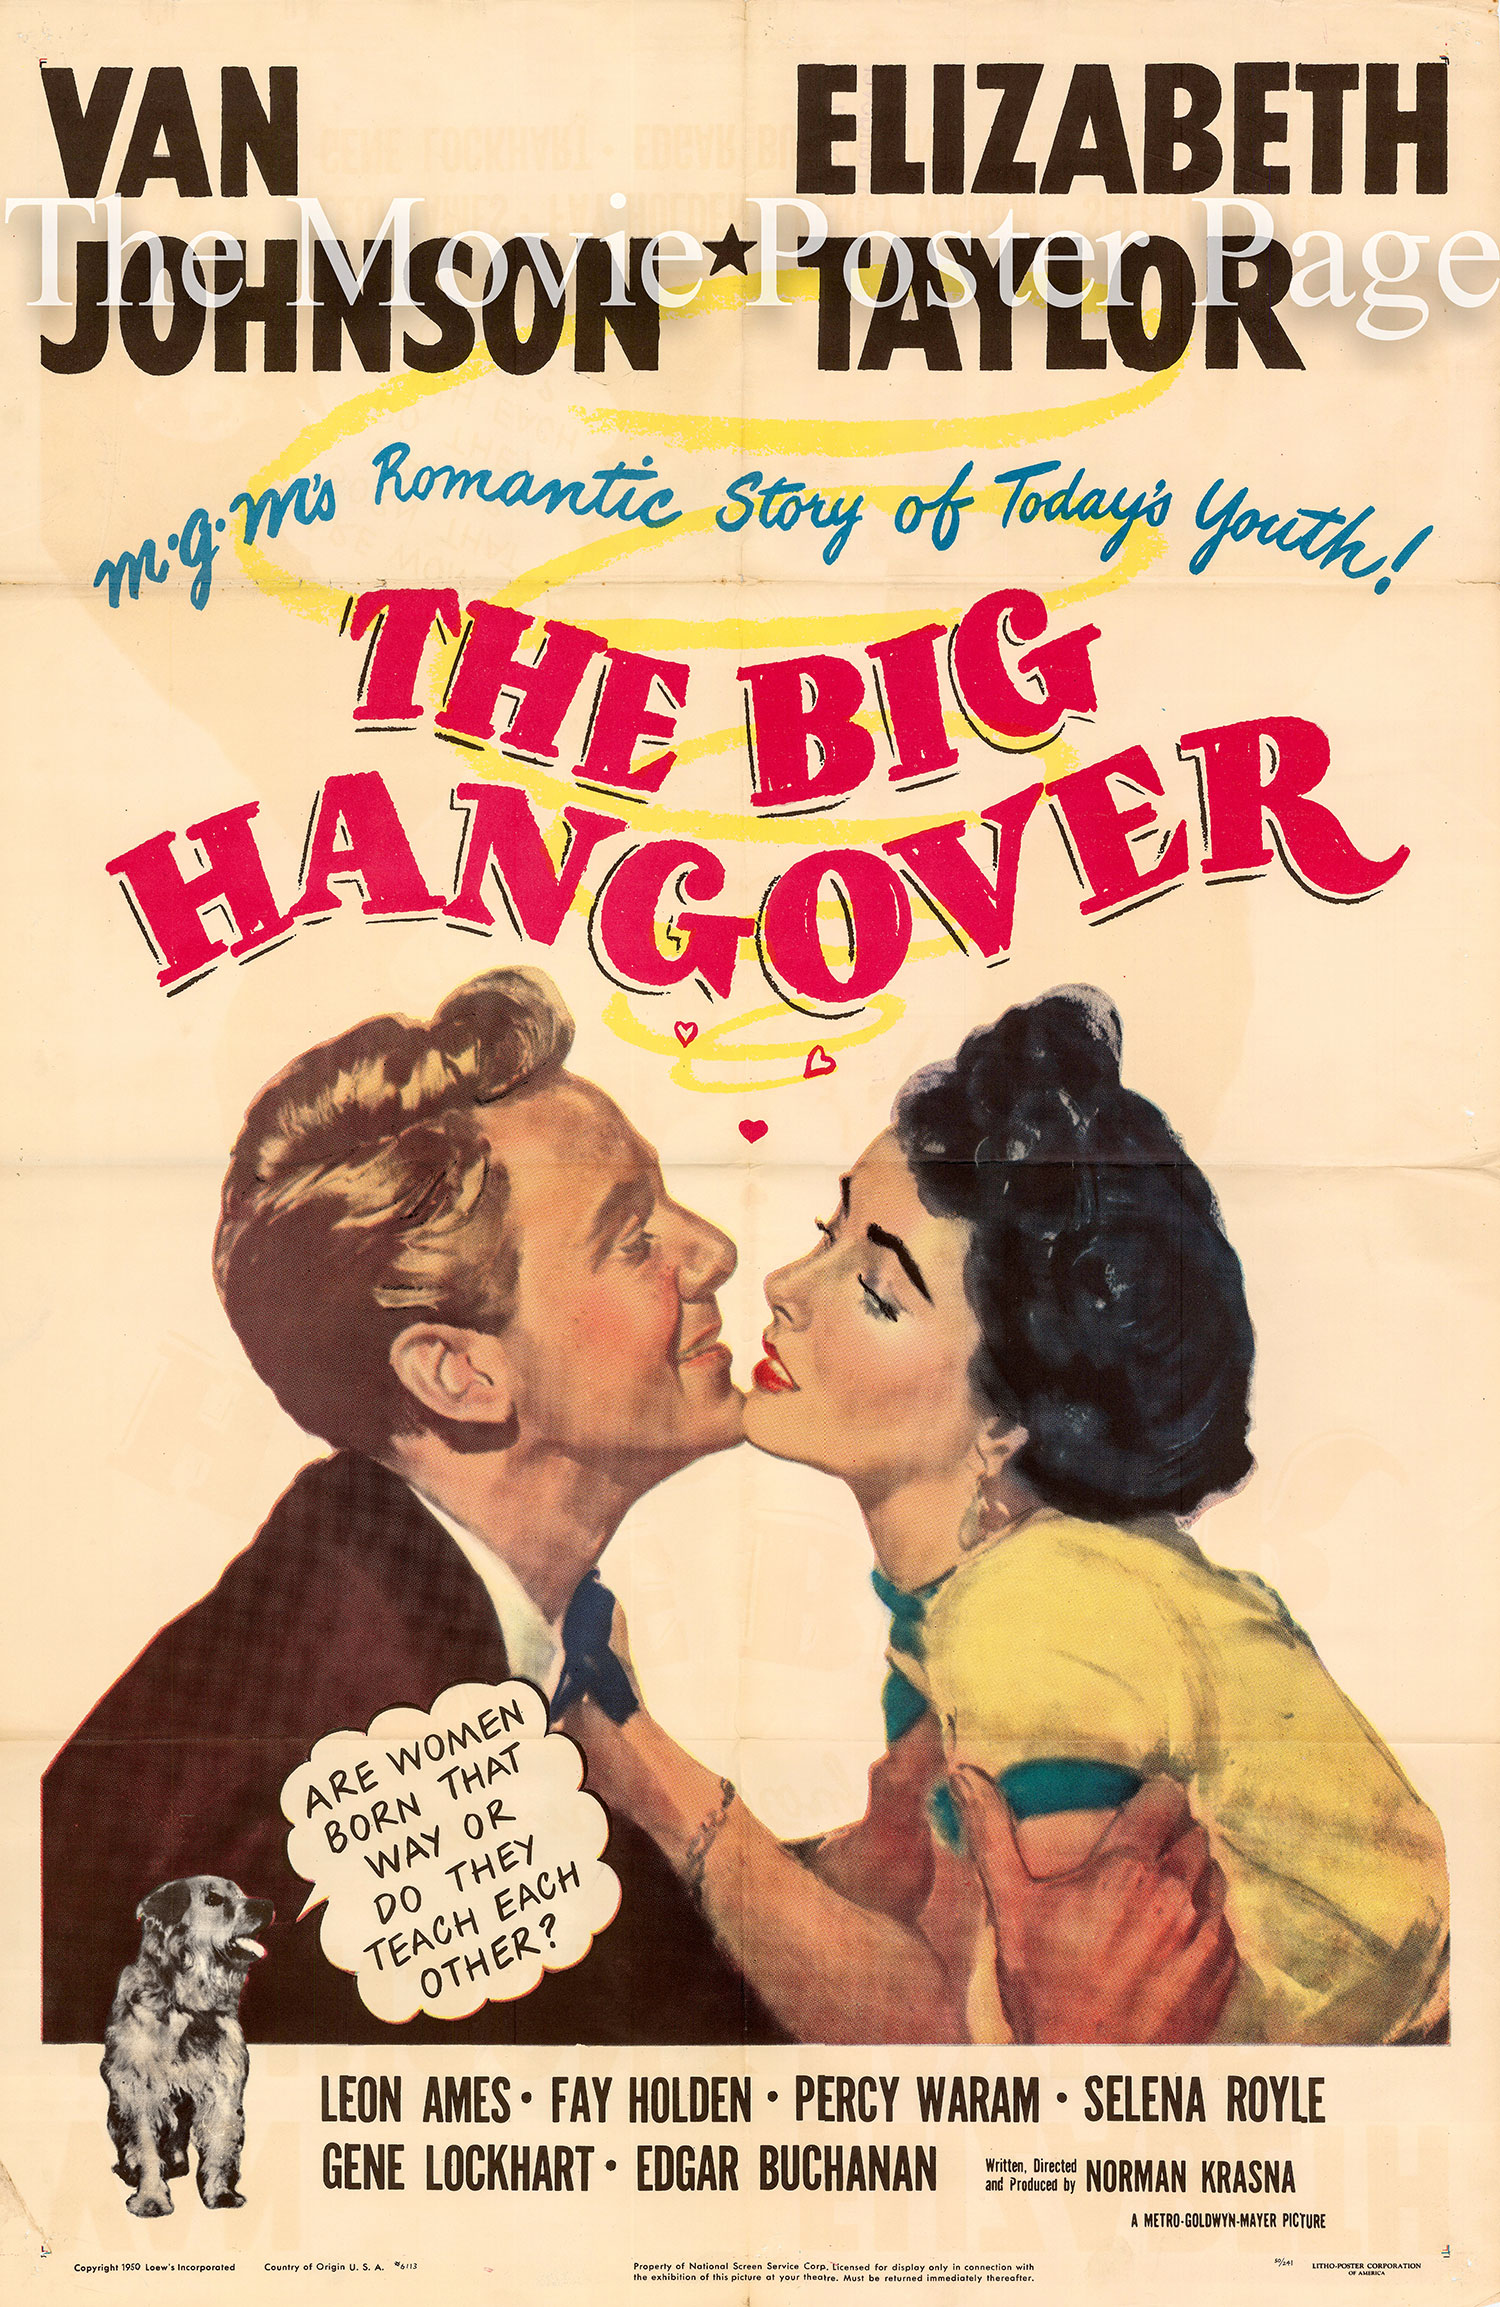 Pictured is a US one-sheet poster for the 1976 Norman Krasna film The Big Hangover starring Elizabeth Taylor and Van Johnson